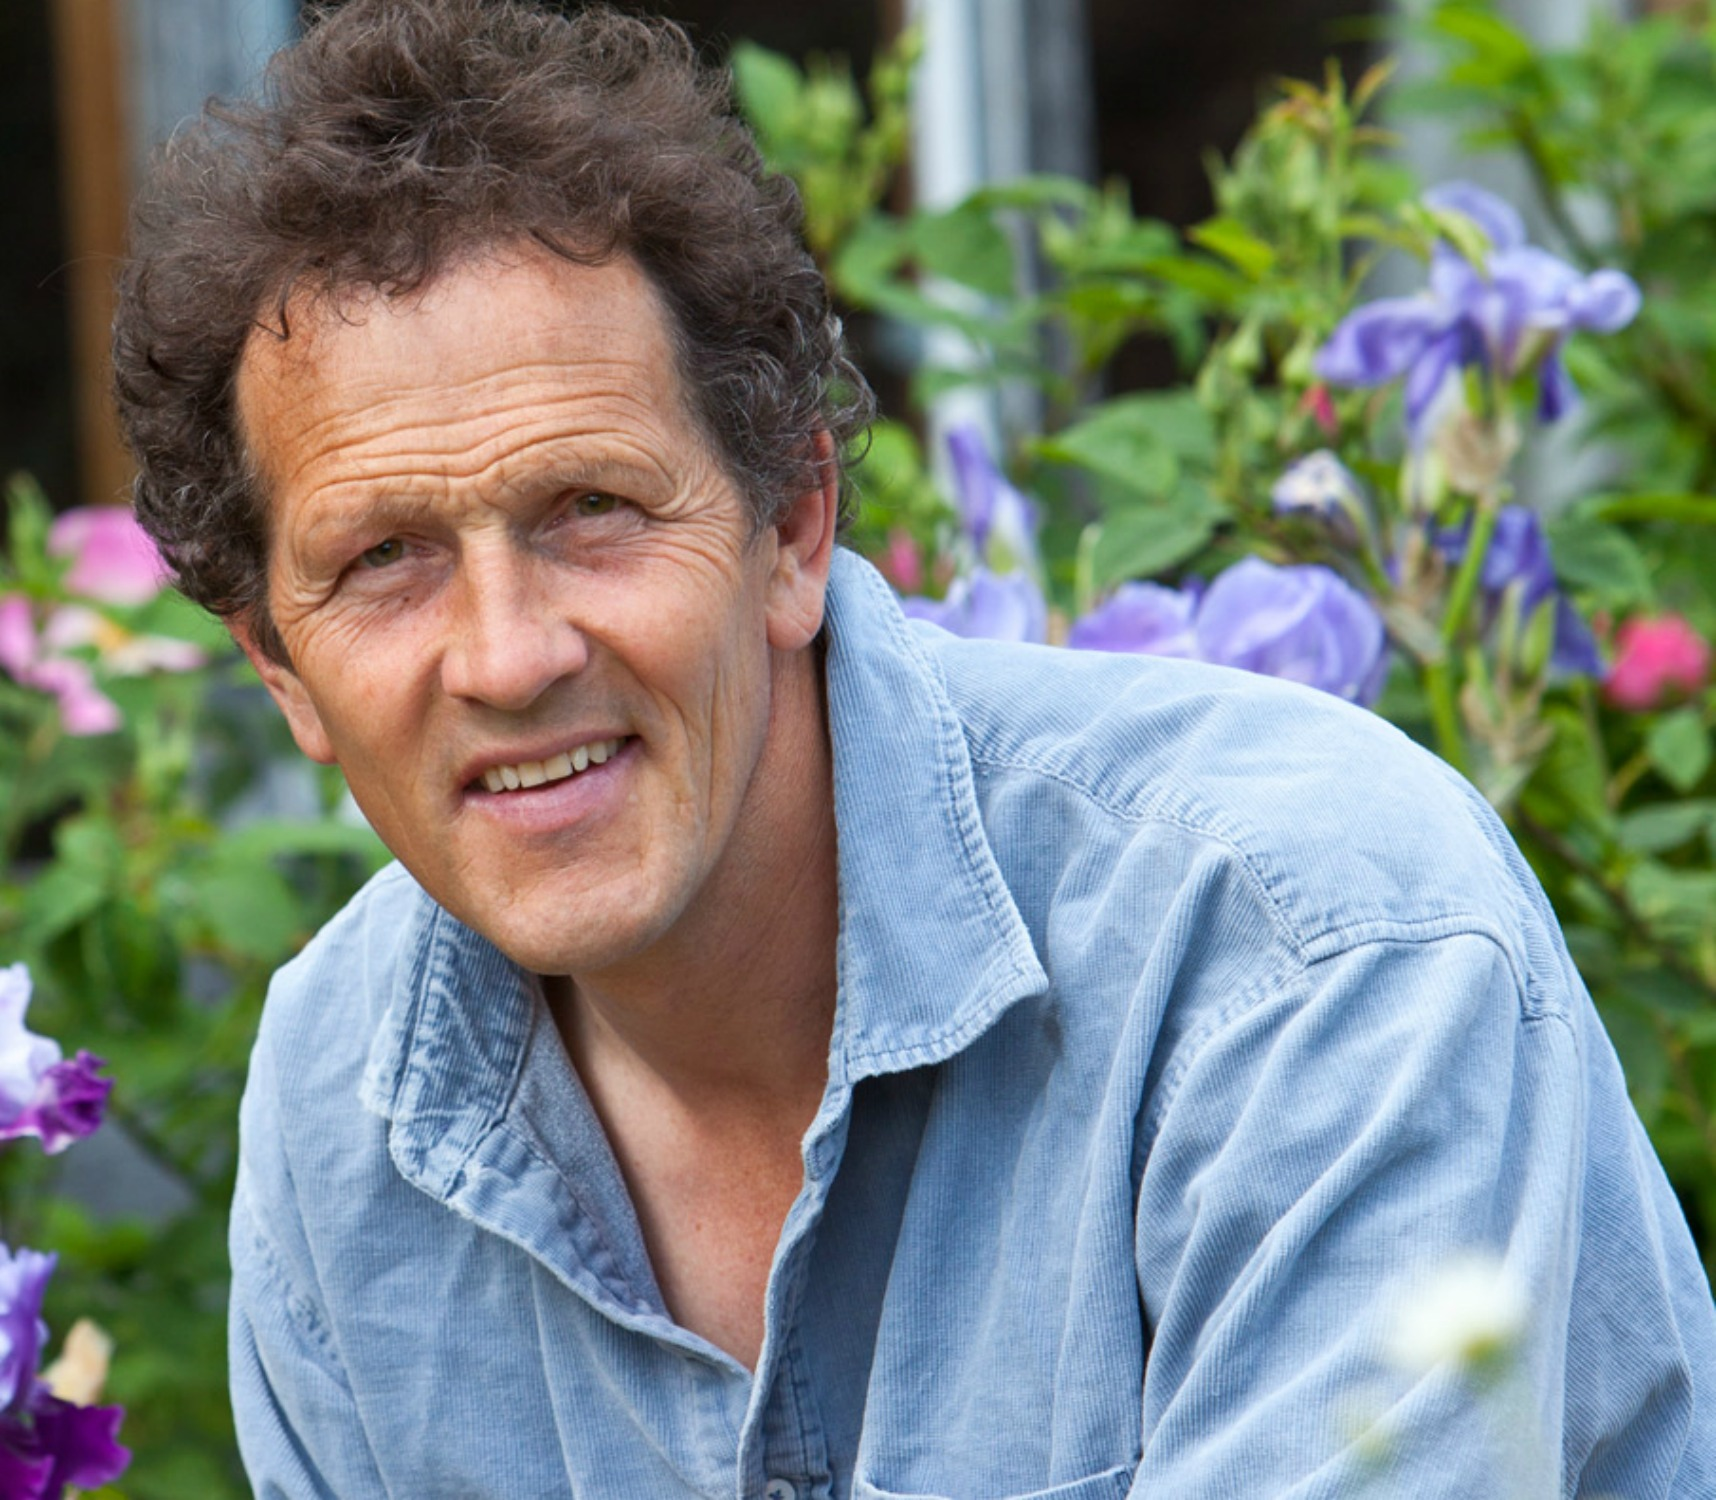 Gardeners' World 2017 – Episode 17 (Jul 19, 2017)